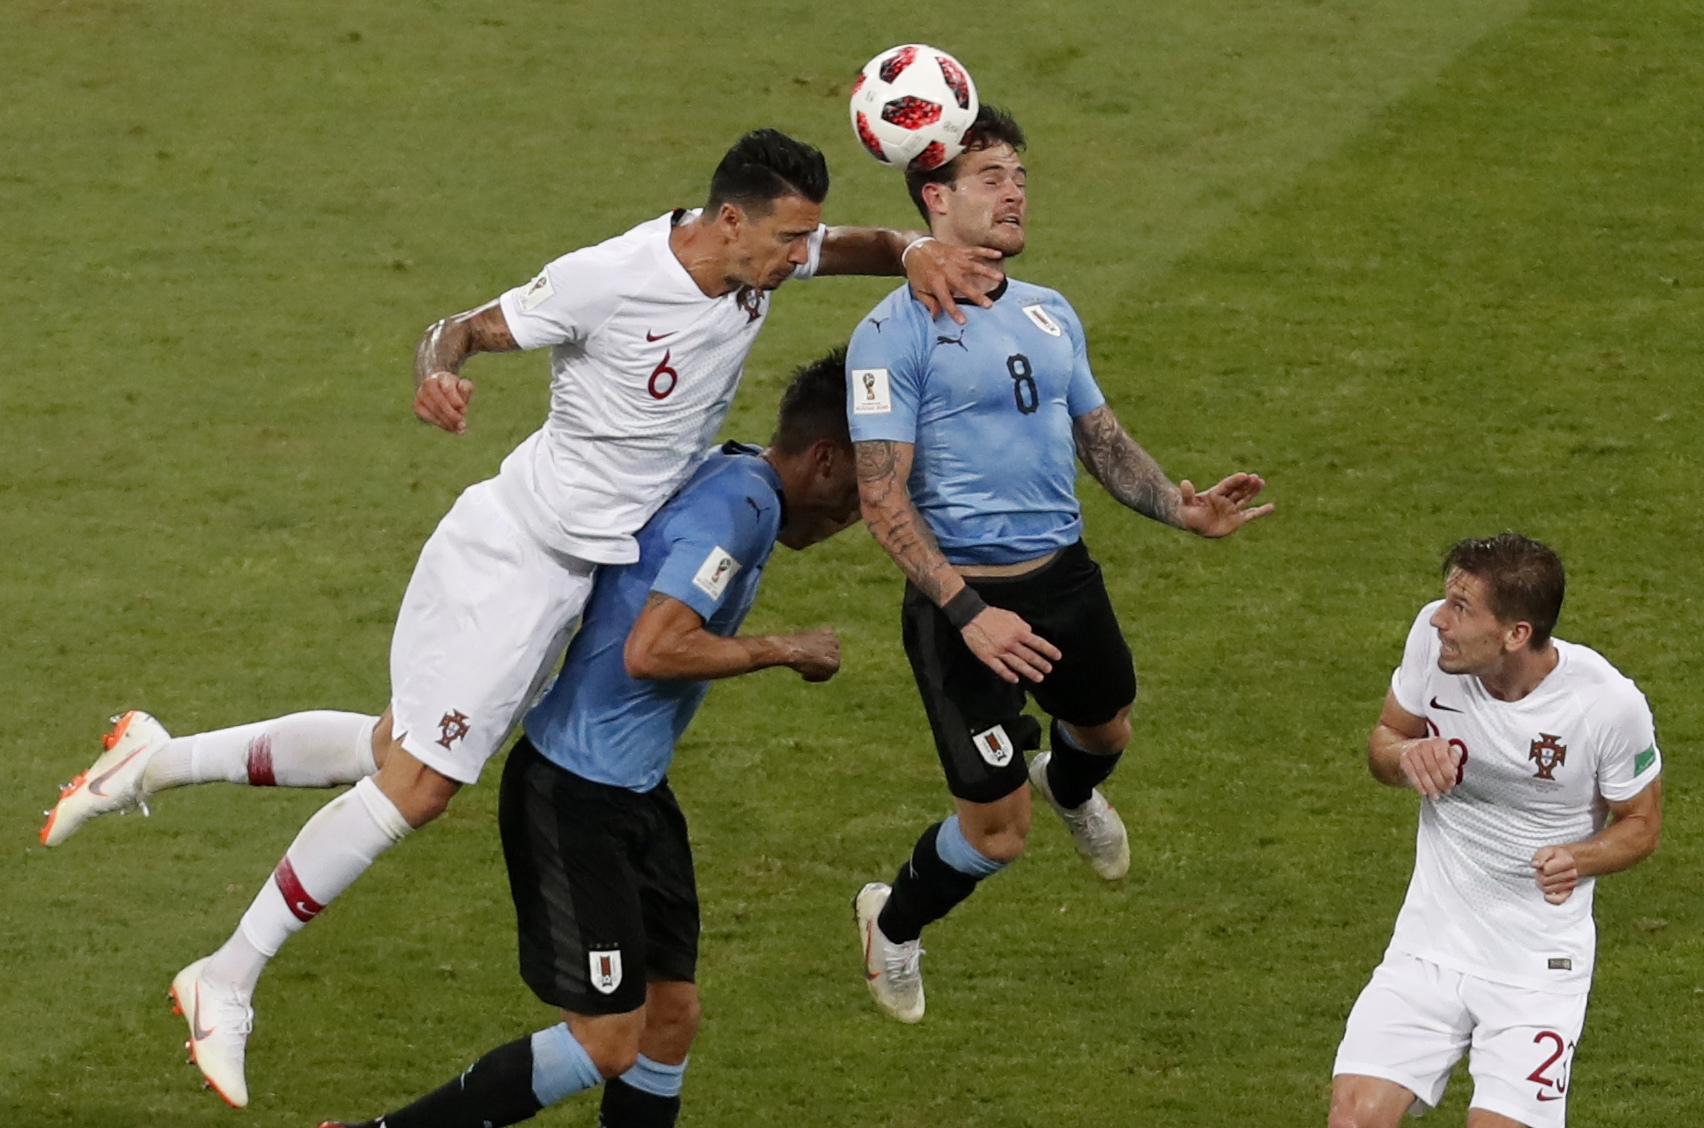 Portugal's Adrien Silva, right, look on as Portugal's Jose Fonte, left, and Uruguay's Nahitan Nandez, second right, go for a header during the round of 16 match between Uruguay and Portugal at the 2018 soccer World Cup at the Fisht Stadium in Sochi, Russia, Saturday, June 30, 2018. (AP Photo/Darko Vojinovic)